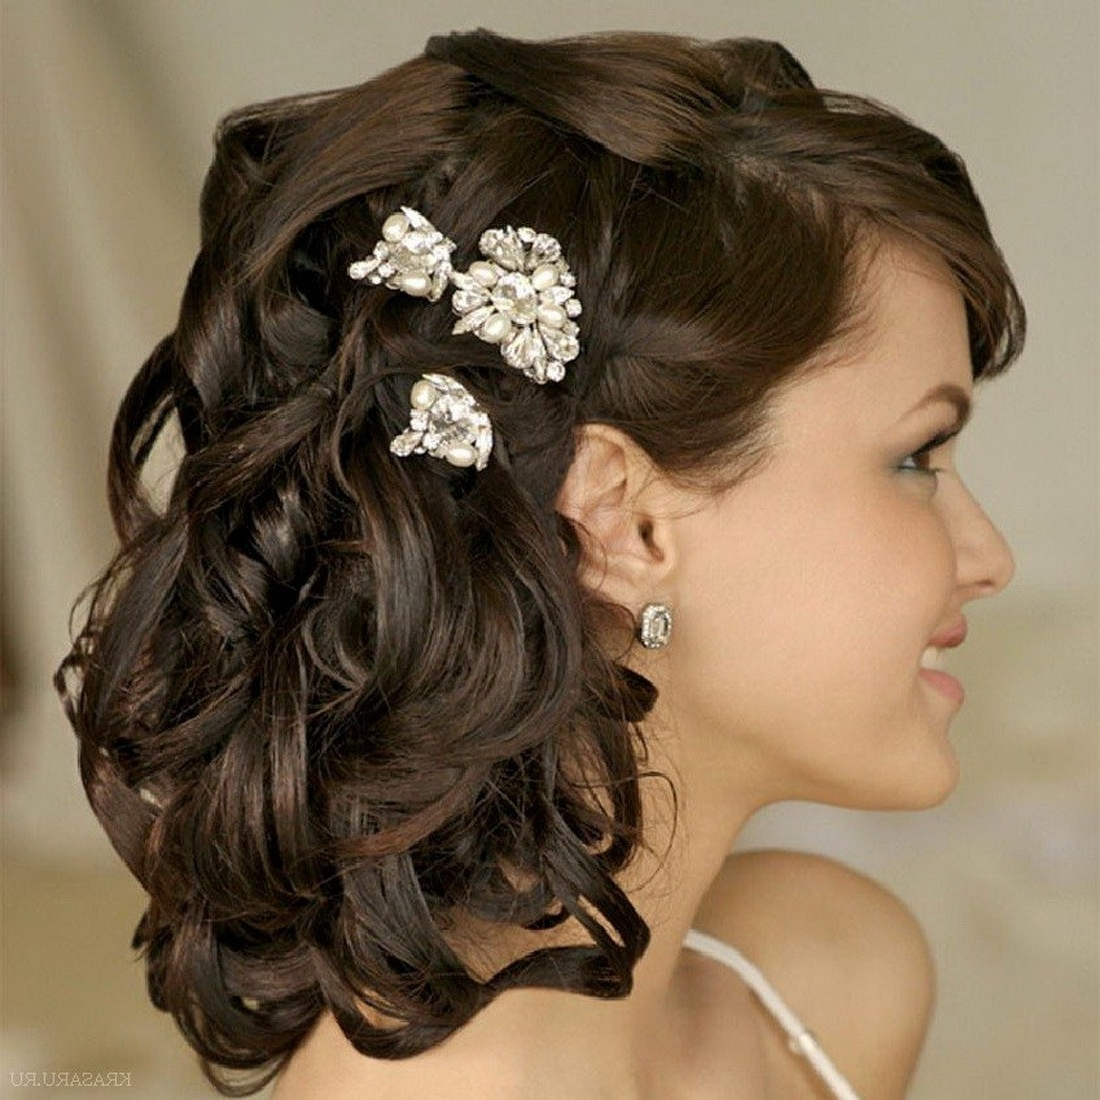 Fashionable Short Wedding Hairstyles Throughout Short Wedding Hairstyle: Lovely Short Hairstyle On Your Special Day (View 13 of 15)